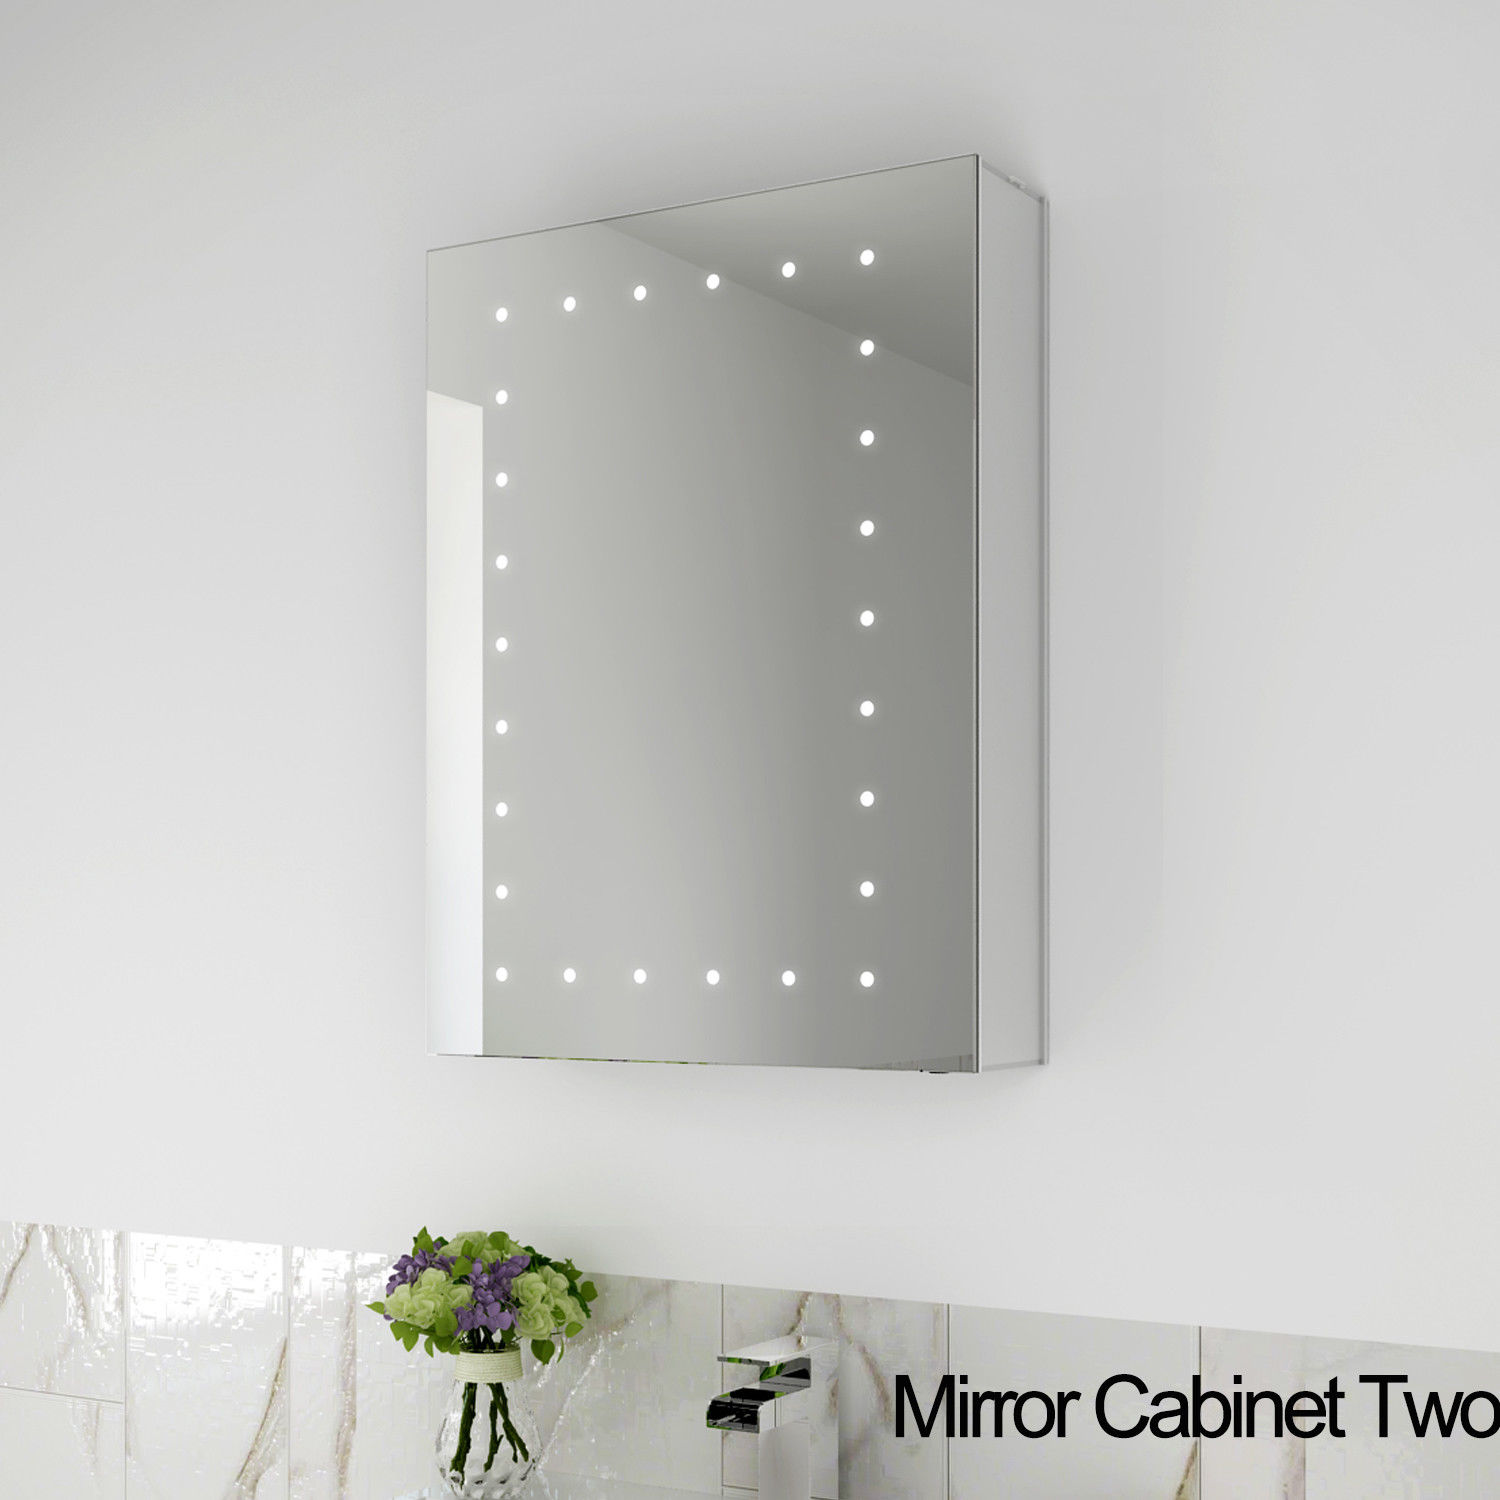 SALLY MC3550L LED Mirror Cabinet light up Bathroom vanity